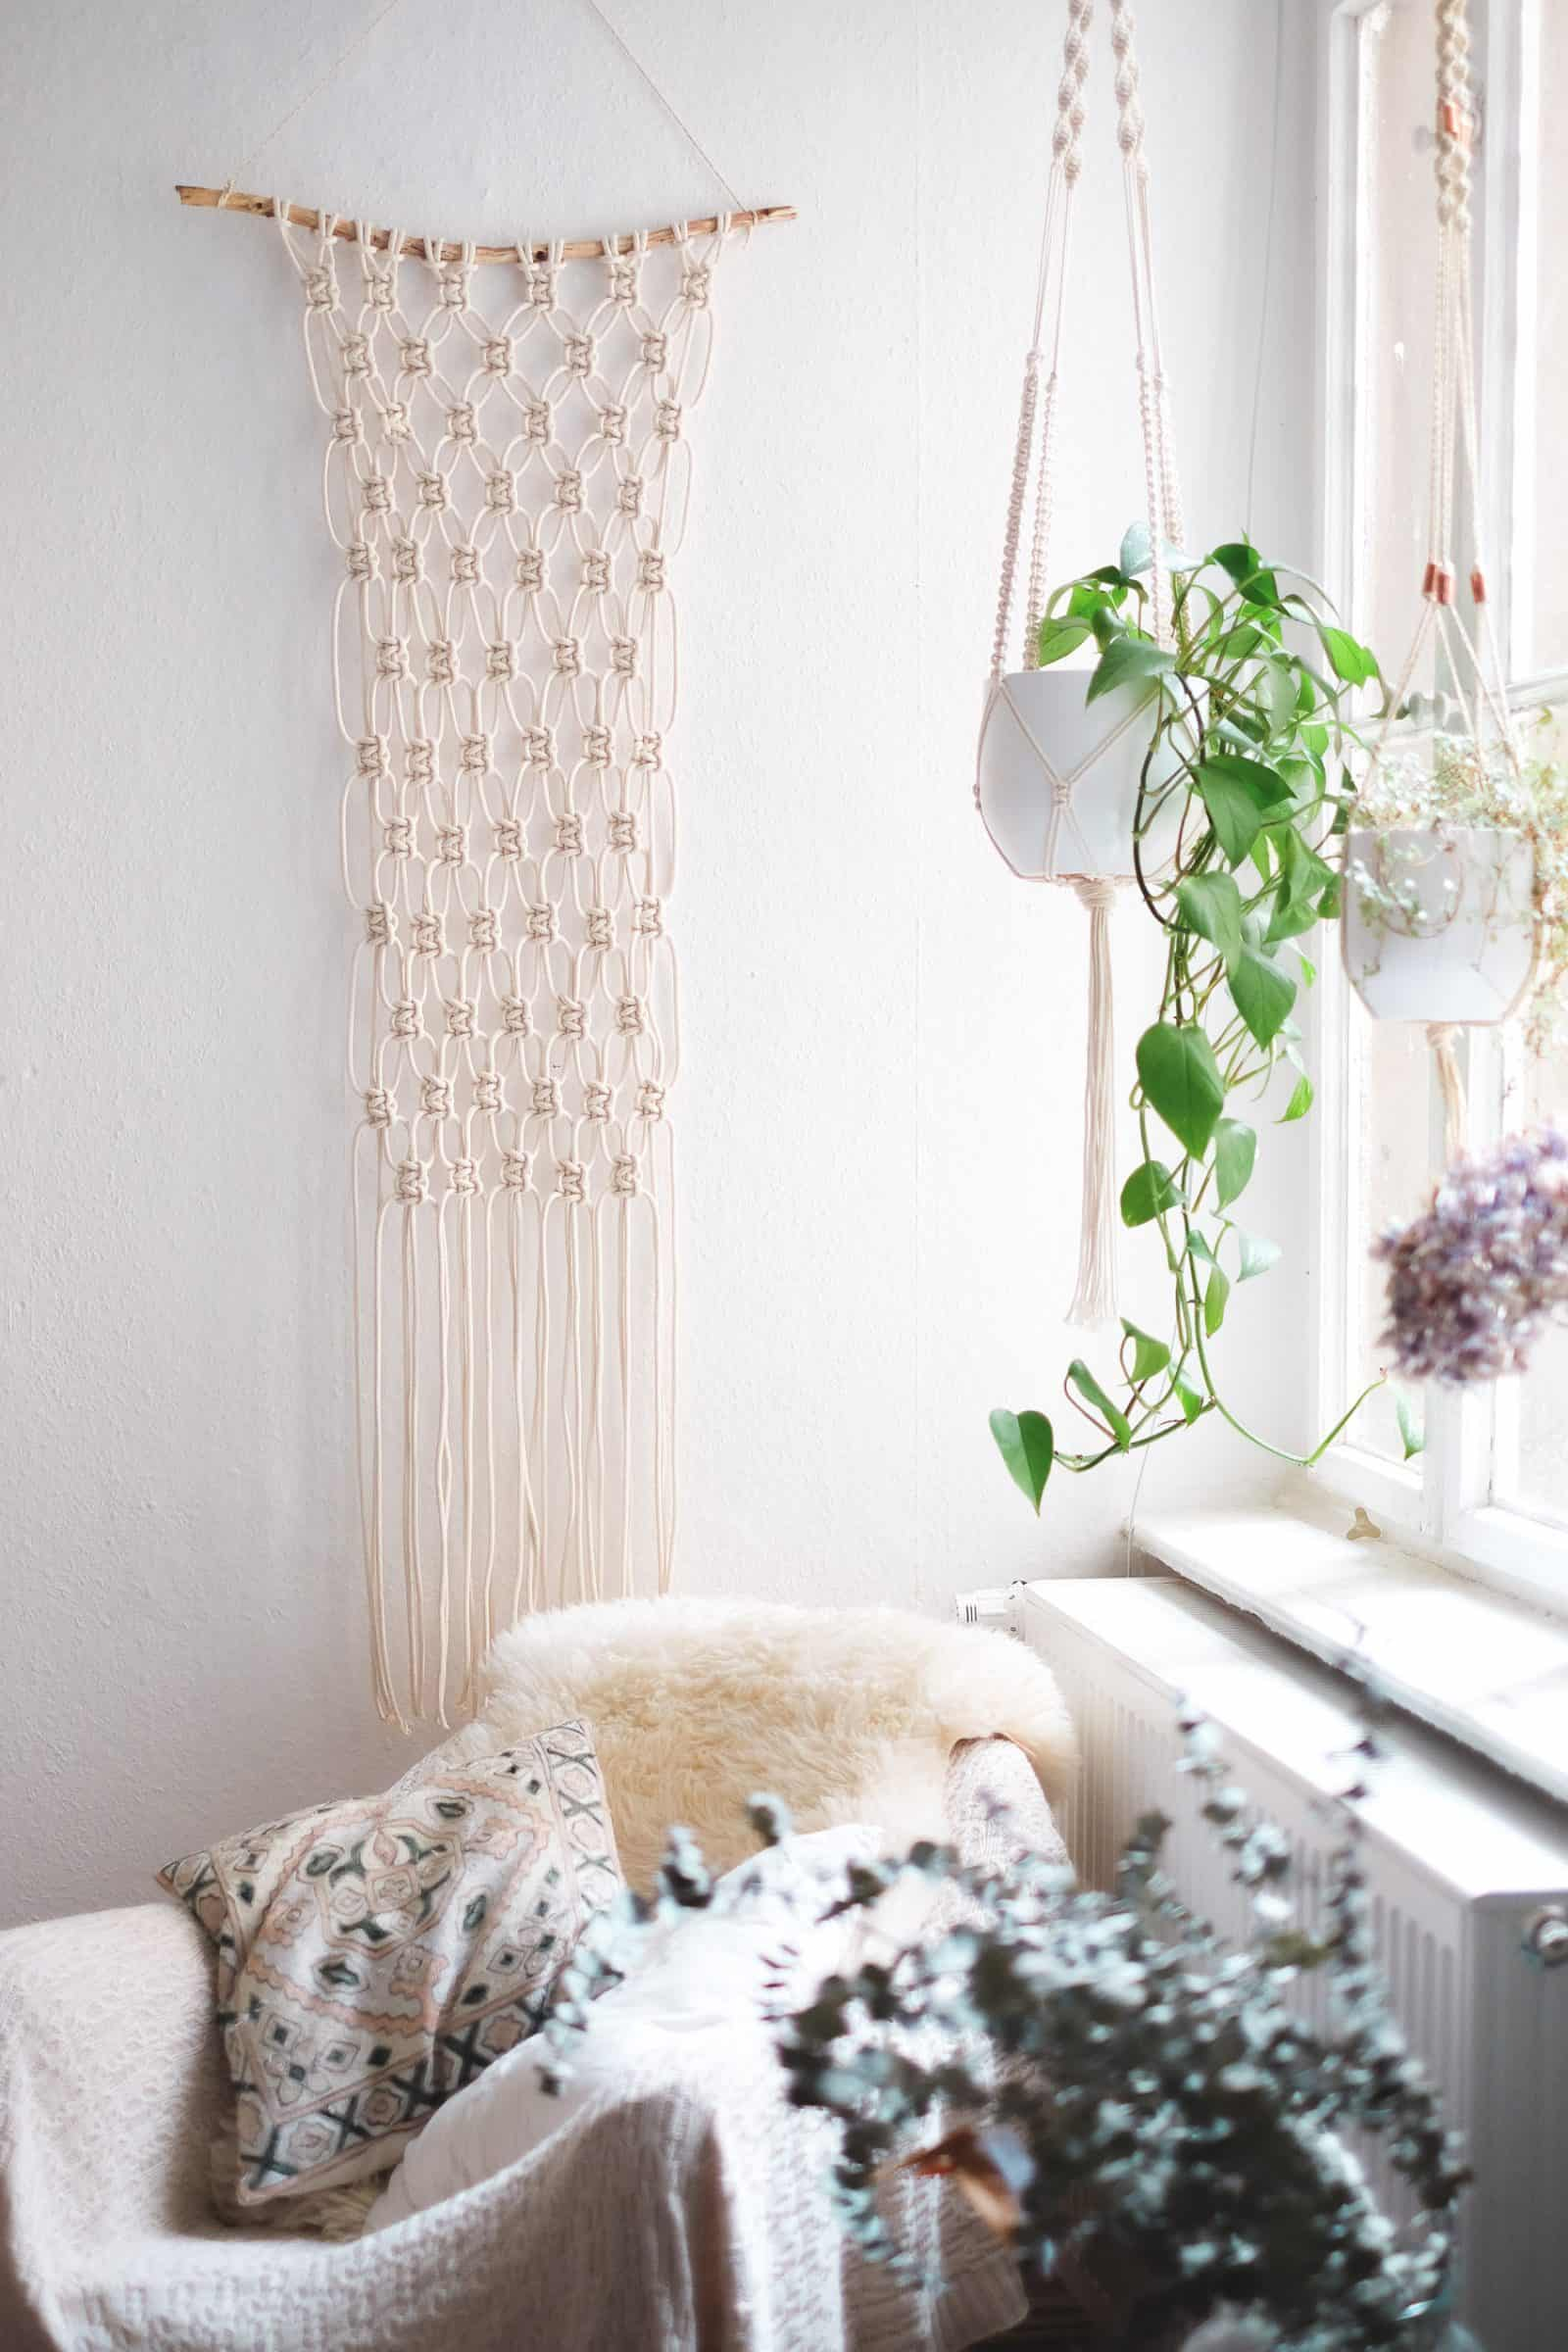 Super easy DIY macrame tutorial 15 Unique DIY Wall Hangings that Will Stand Out